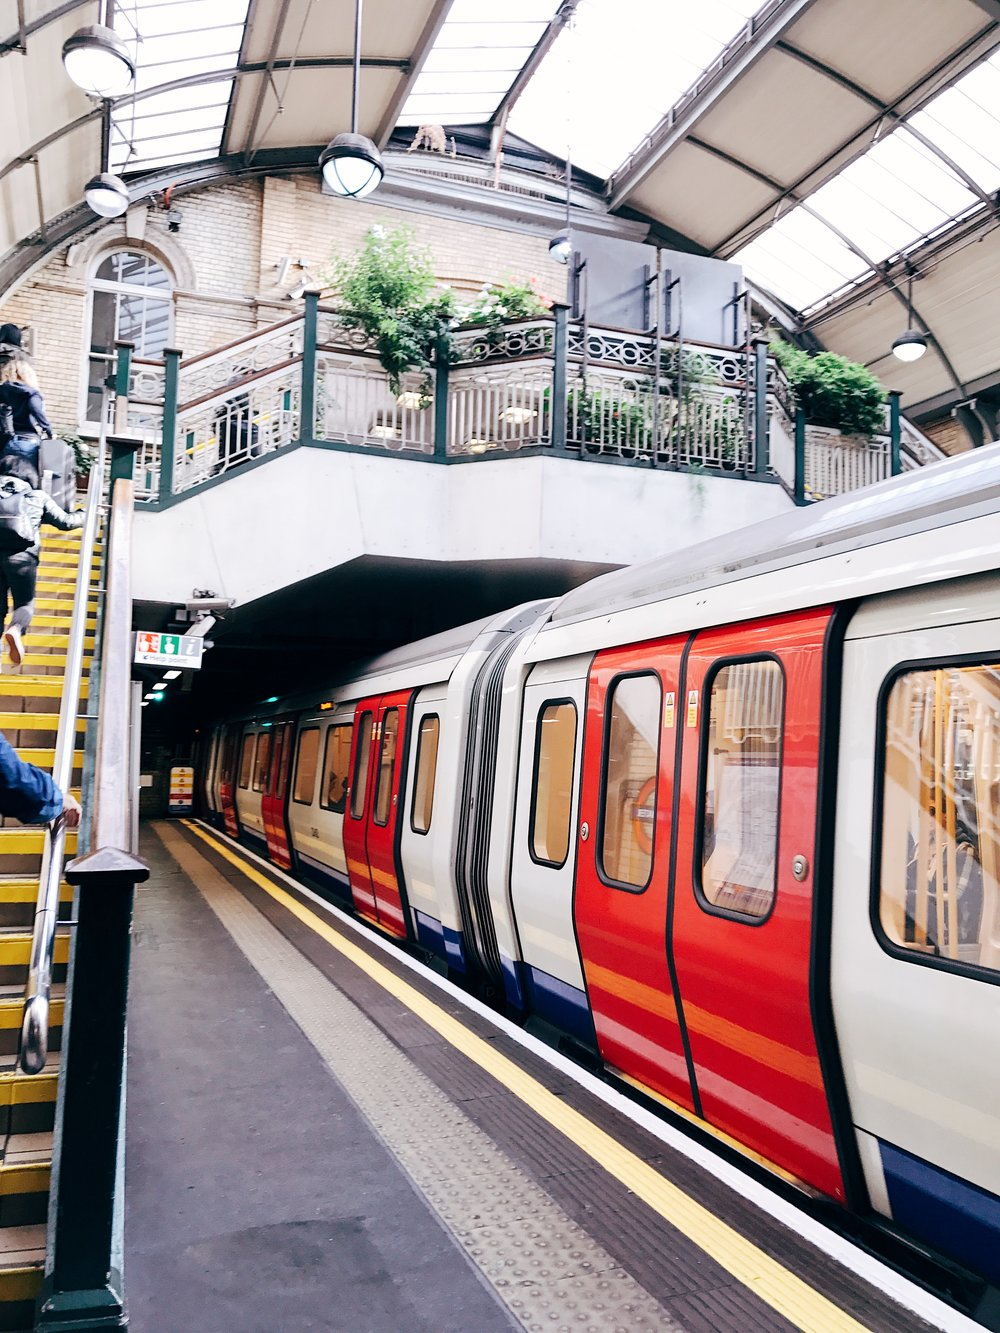 Image: Reasons to Visit London - Many Images to Inspire You to Visit London - Tube